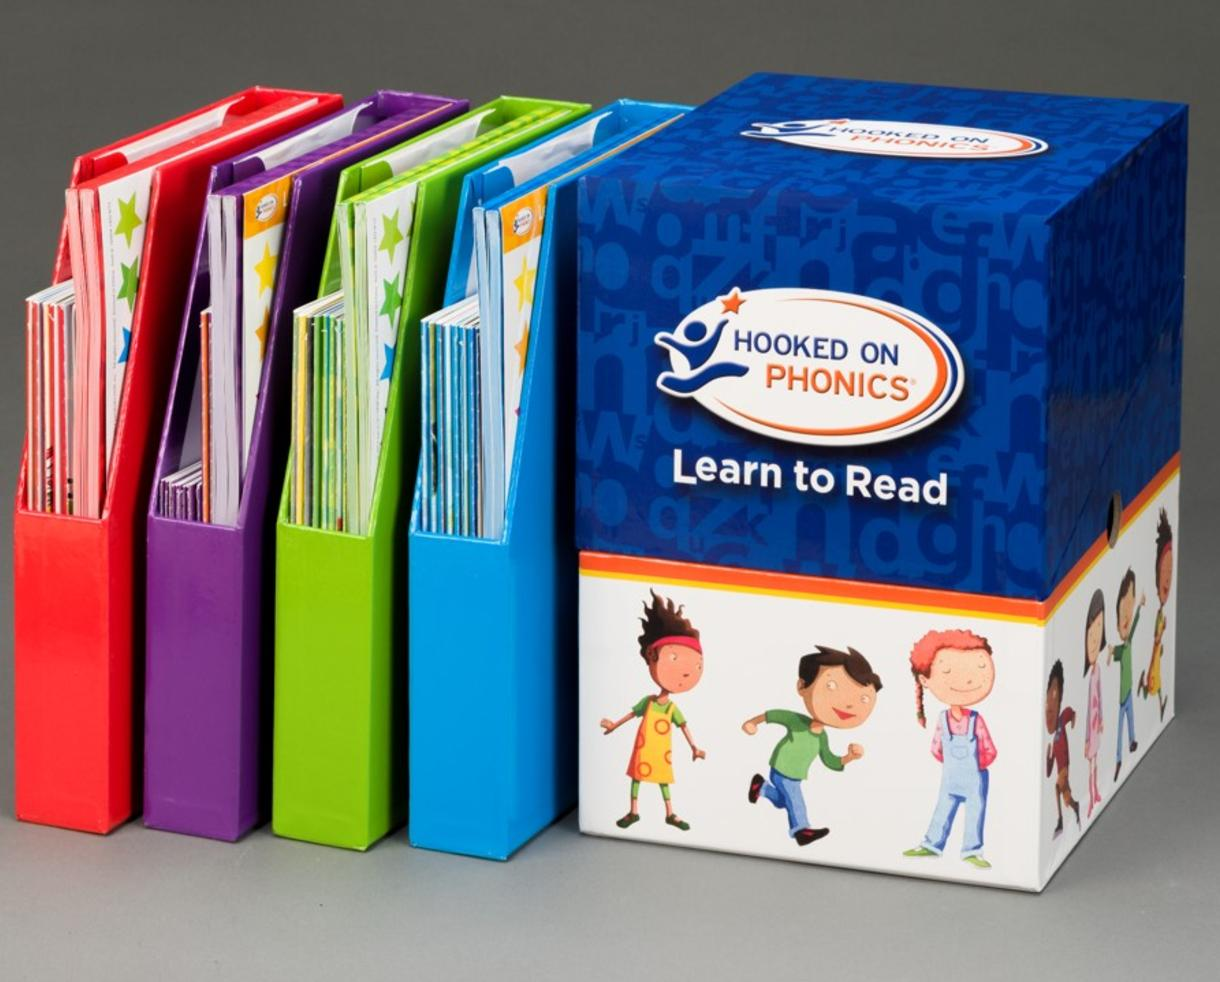 $134 for Hooked on Phonics Complete LEARN TO READ Kit for Pre-K to ...